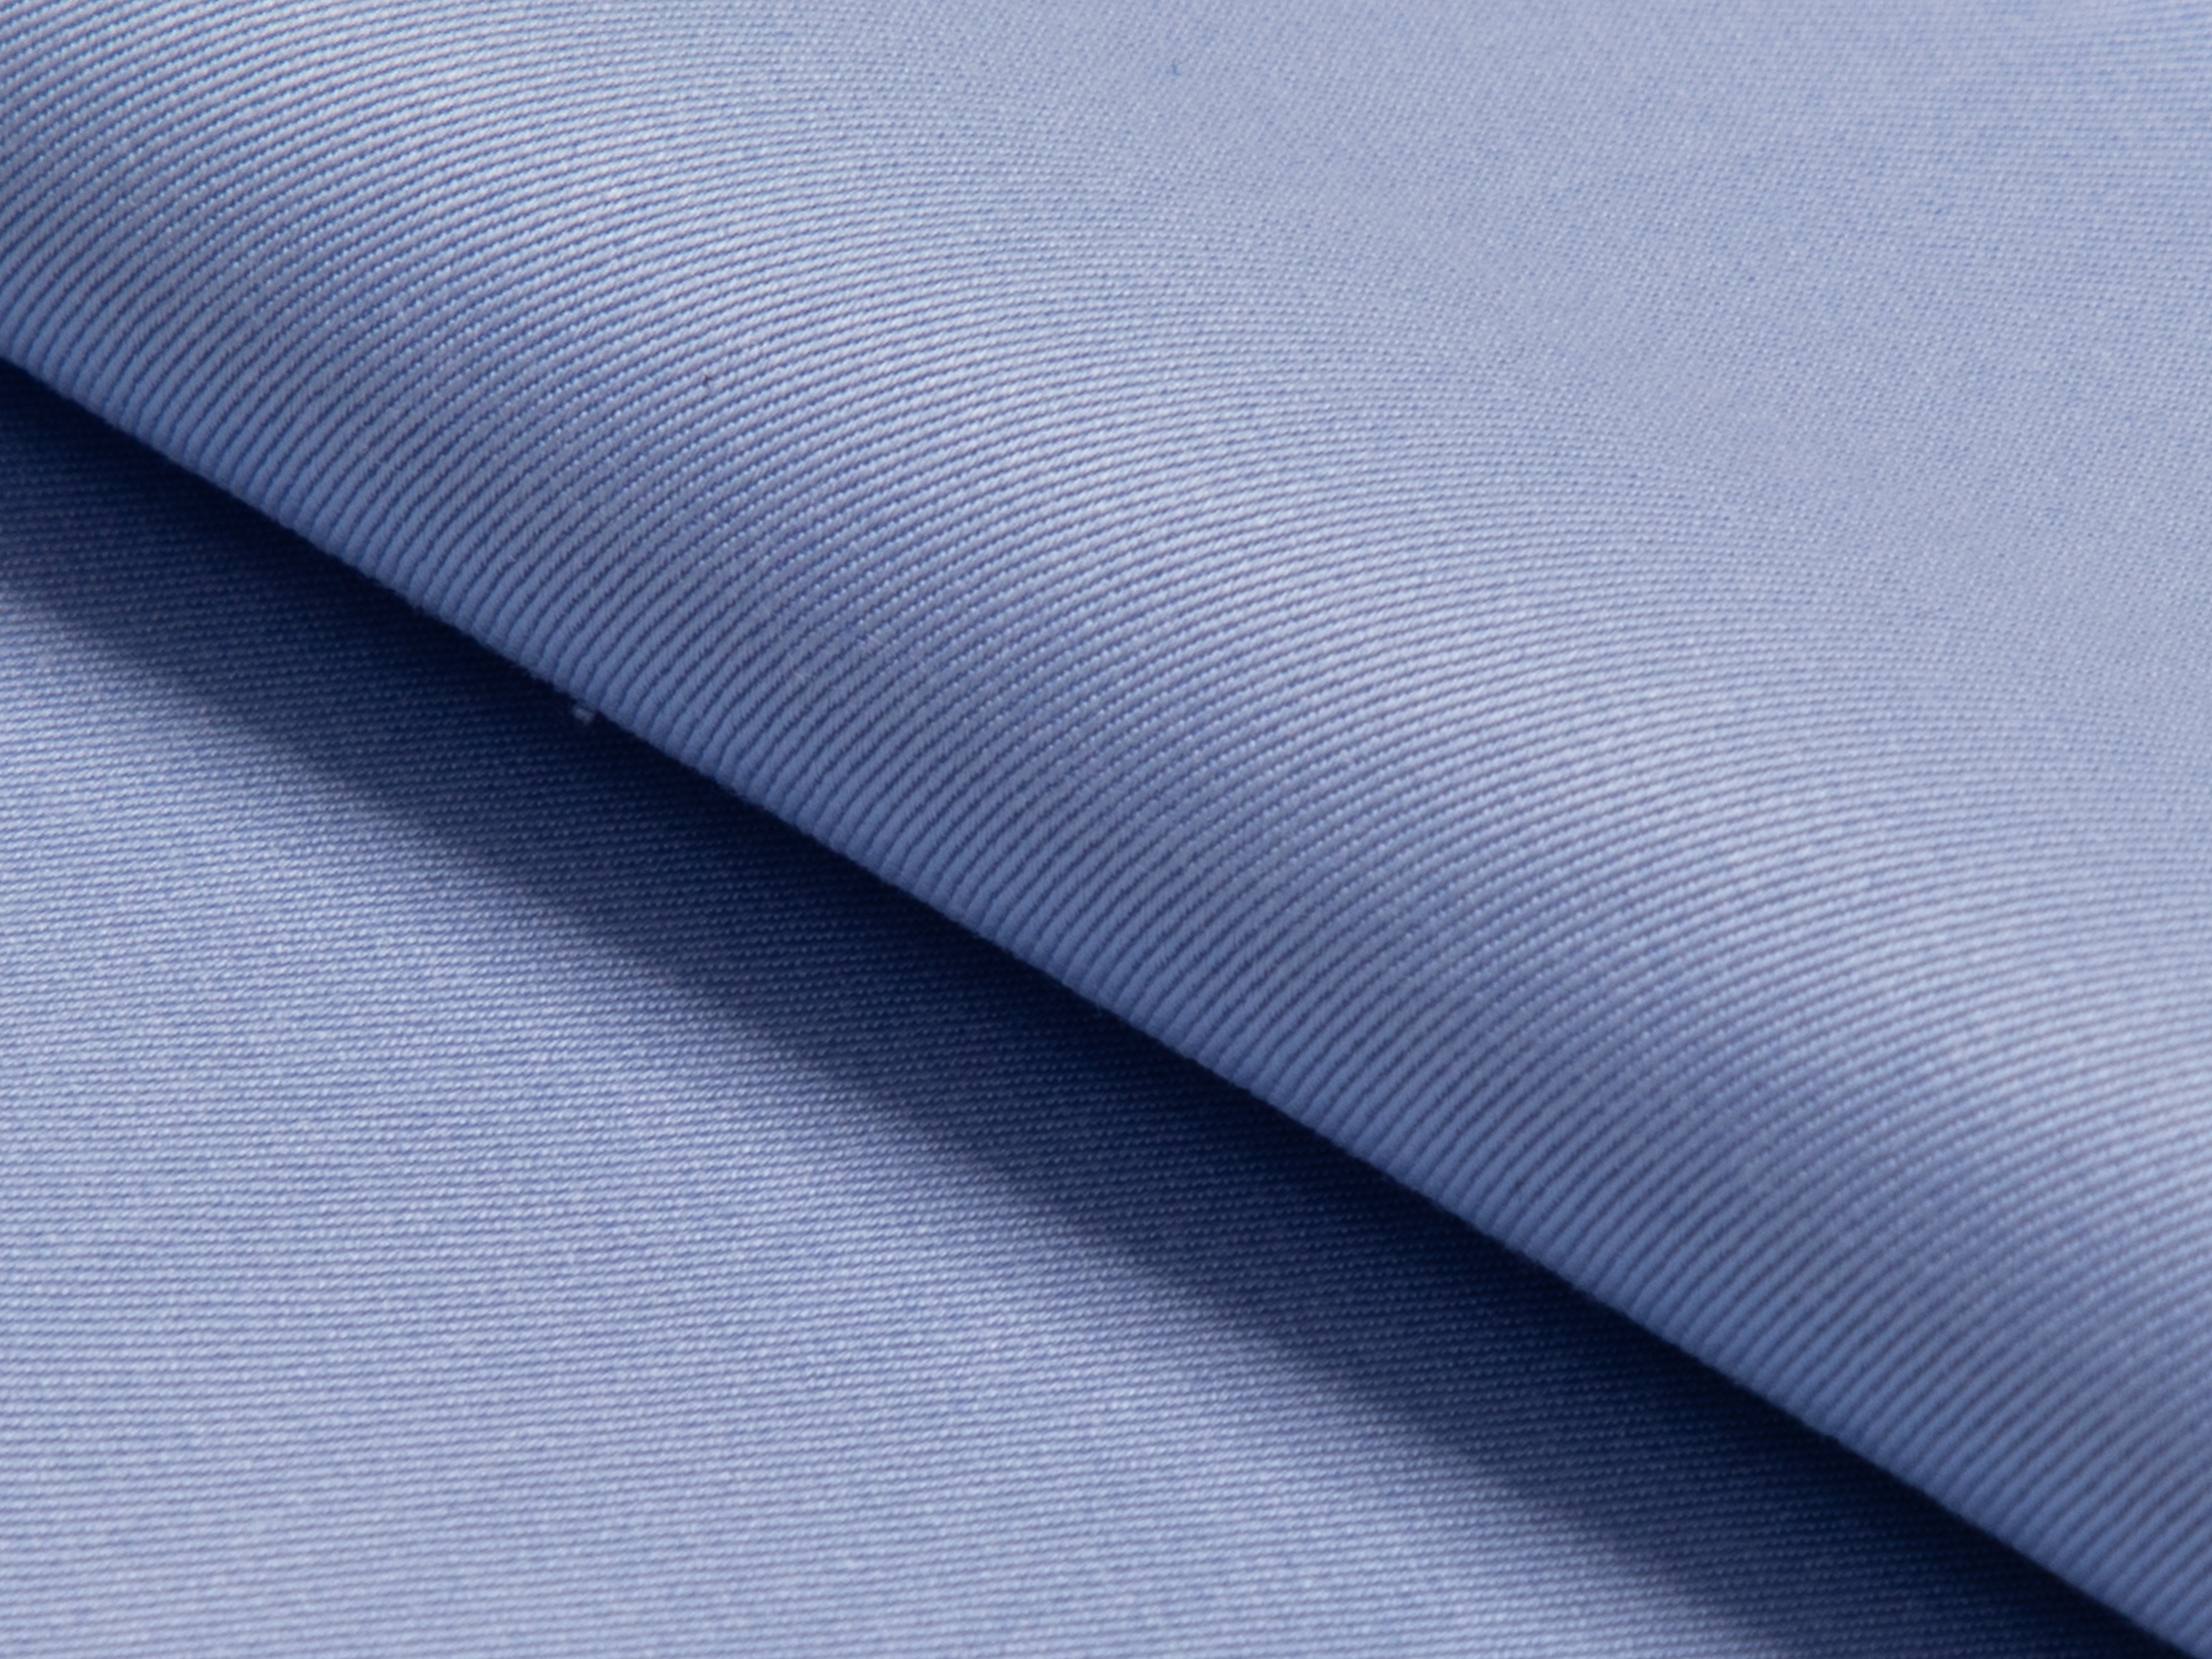 Buy tailor made shirts online - MAYFAIR (NEW) - Twill Blue